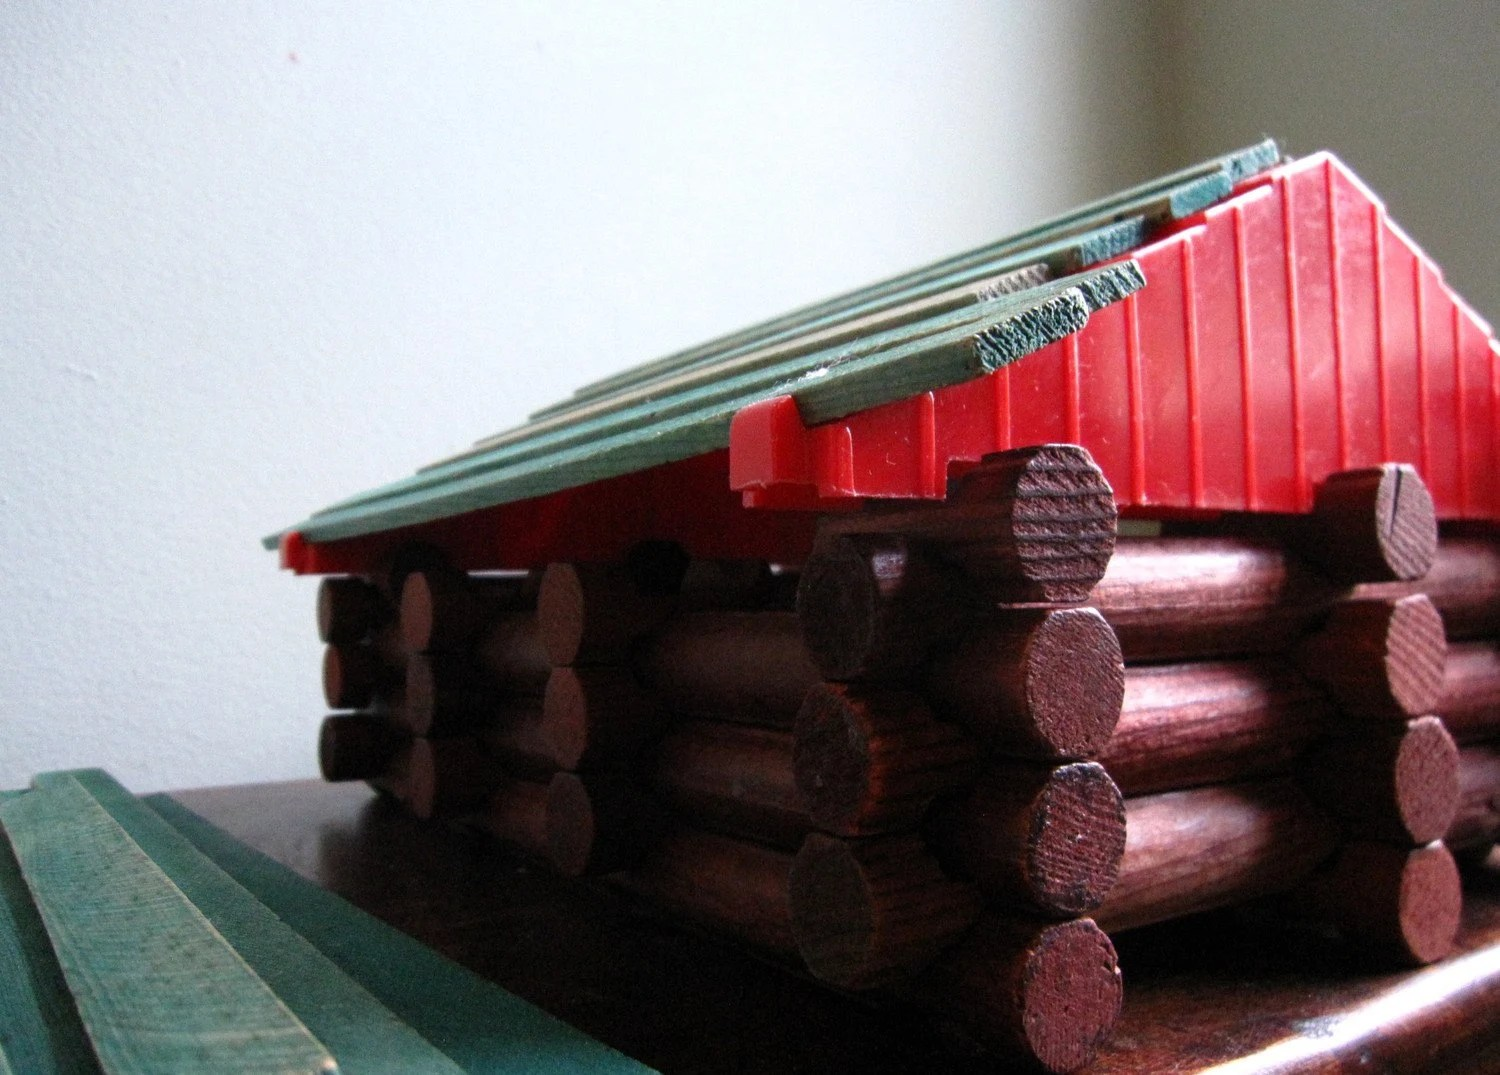 Lincoln Logs By Playskool 1974 Frontiersman Set By APKVintage